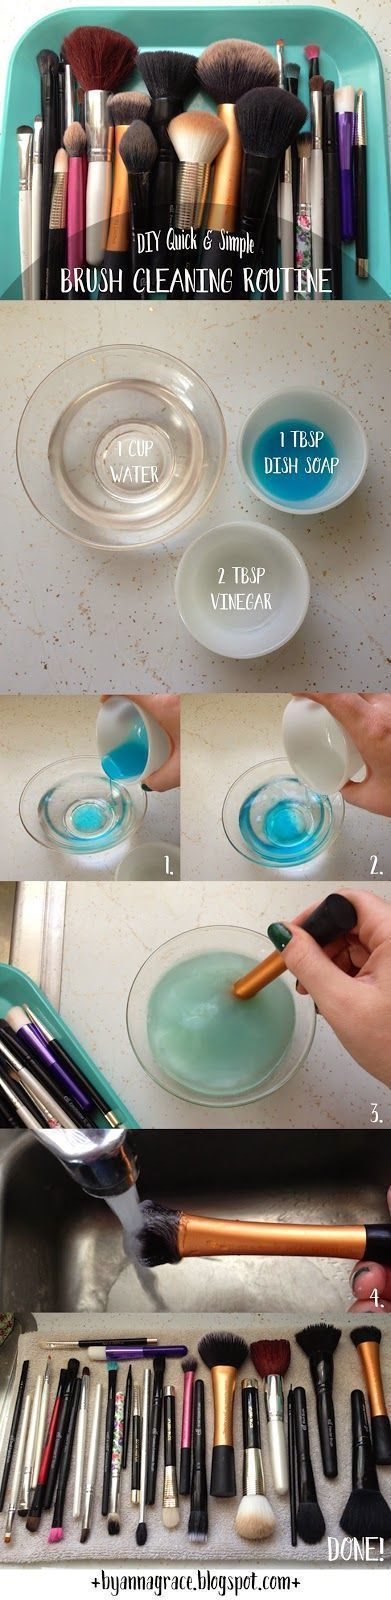 How to Clean your makeup brushes /// Hey babe! Come Detox with us. Lose Weight & Feel Great. #1 Best Tasting Detox Tea. SHOP HERE :arrow_right: http://www.asapskinny.com